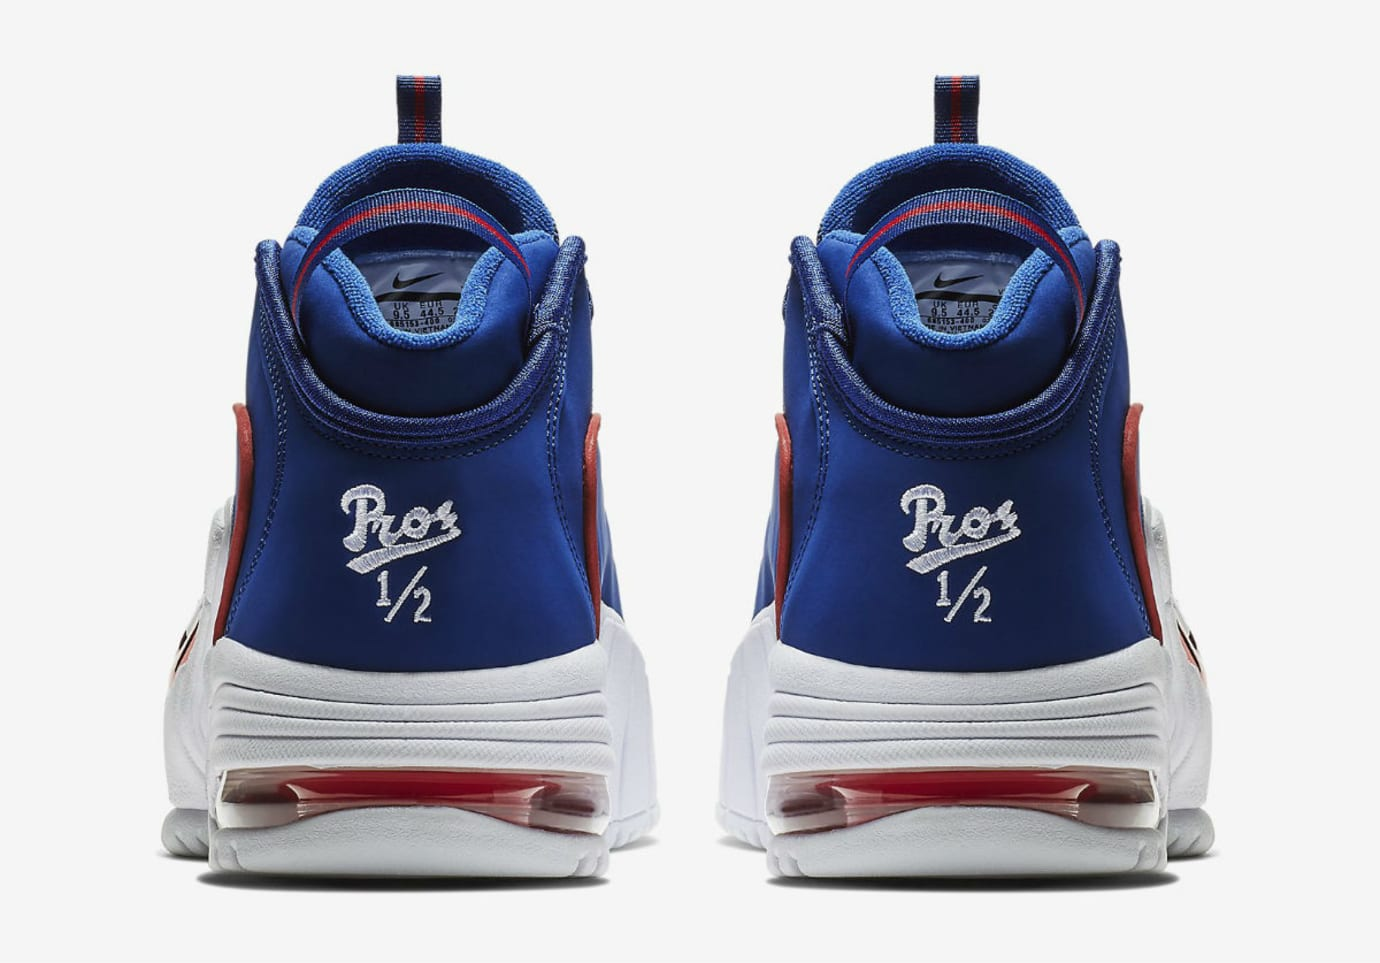 Nike Air Max Penny 1 Lil' Penny Release Date 685153-400 Heel